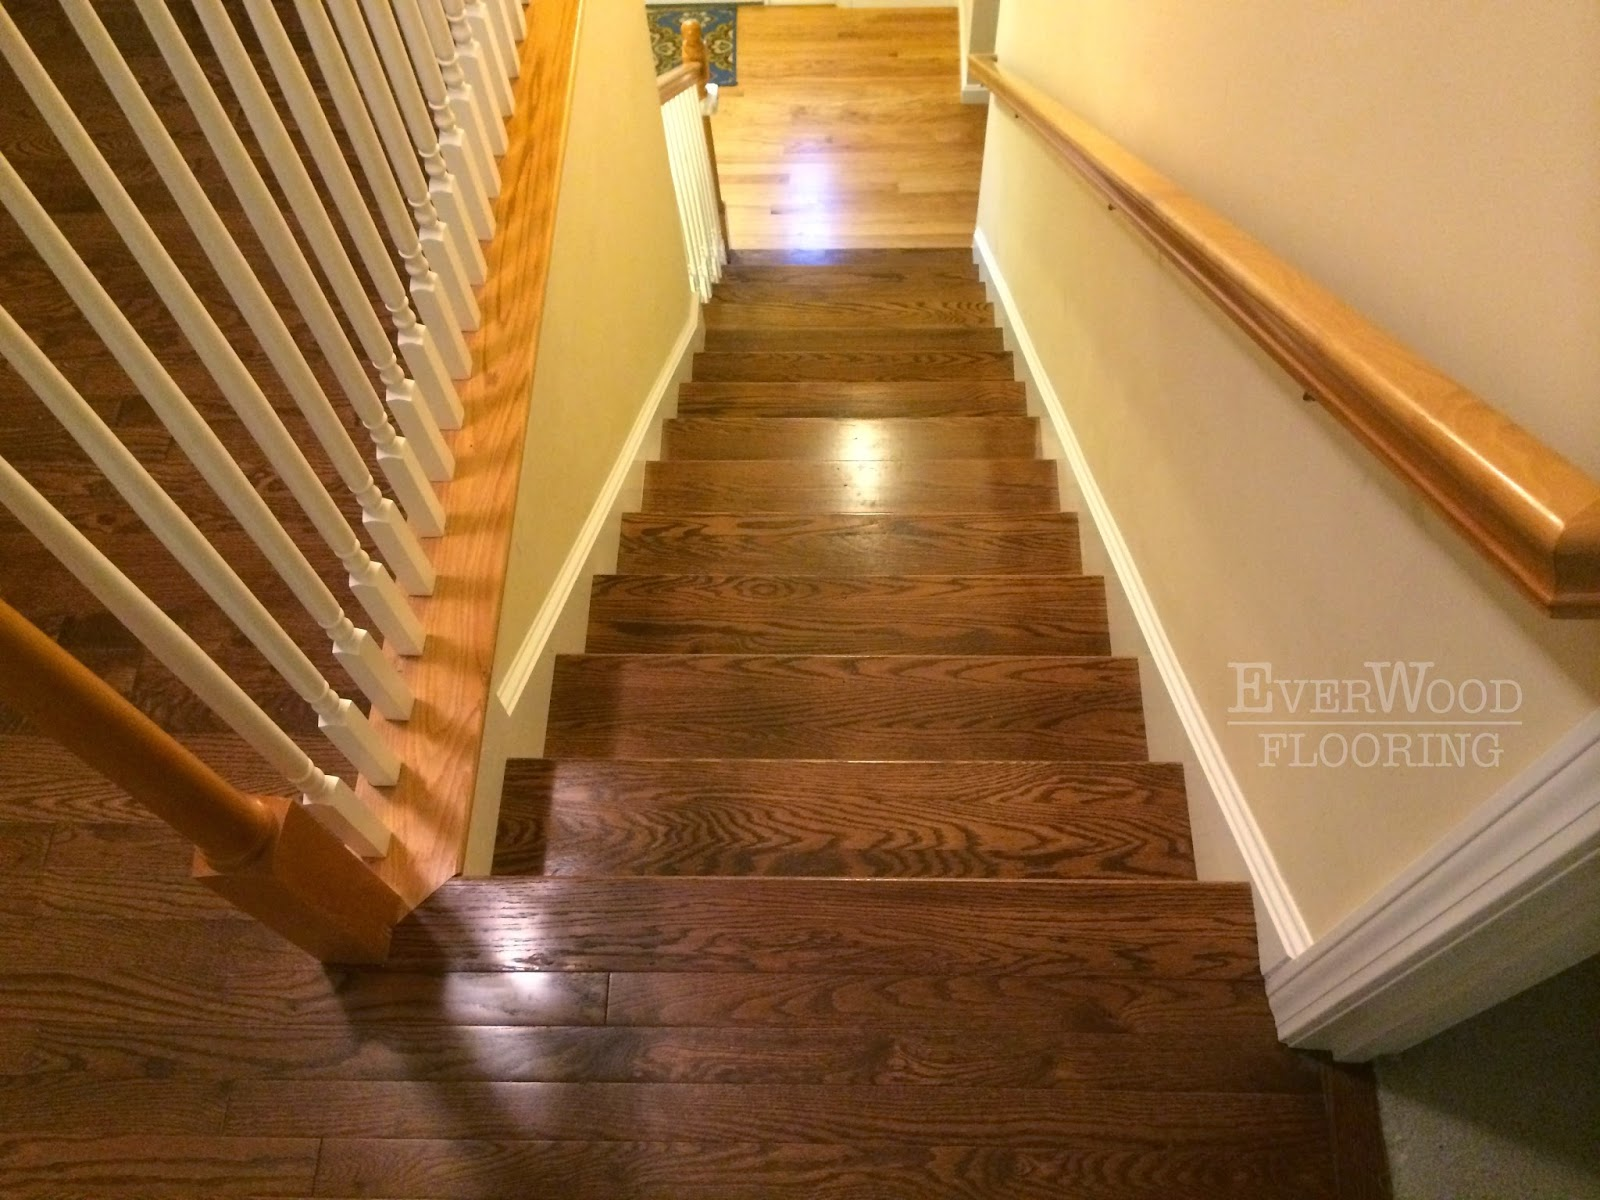 EverWood Flooring Project Profiles: Prefinished Oak Install with Custom-Stained Stair Treads to ...